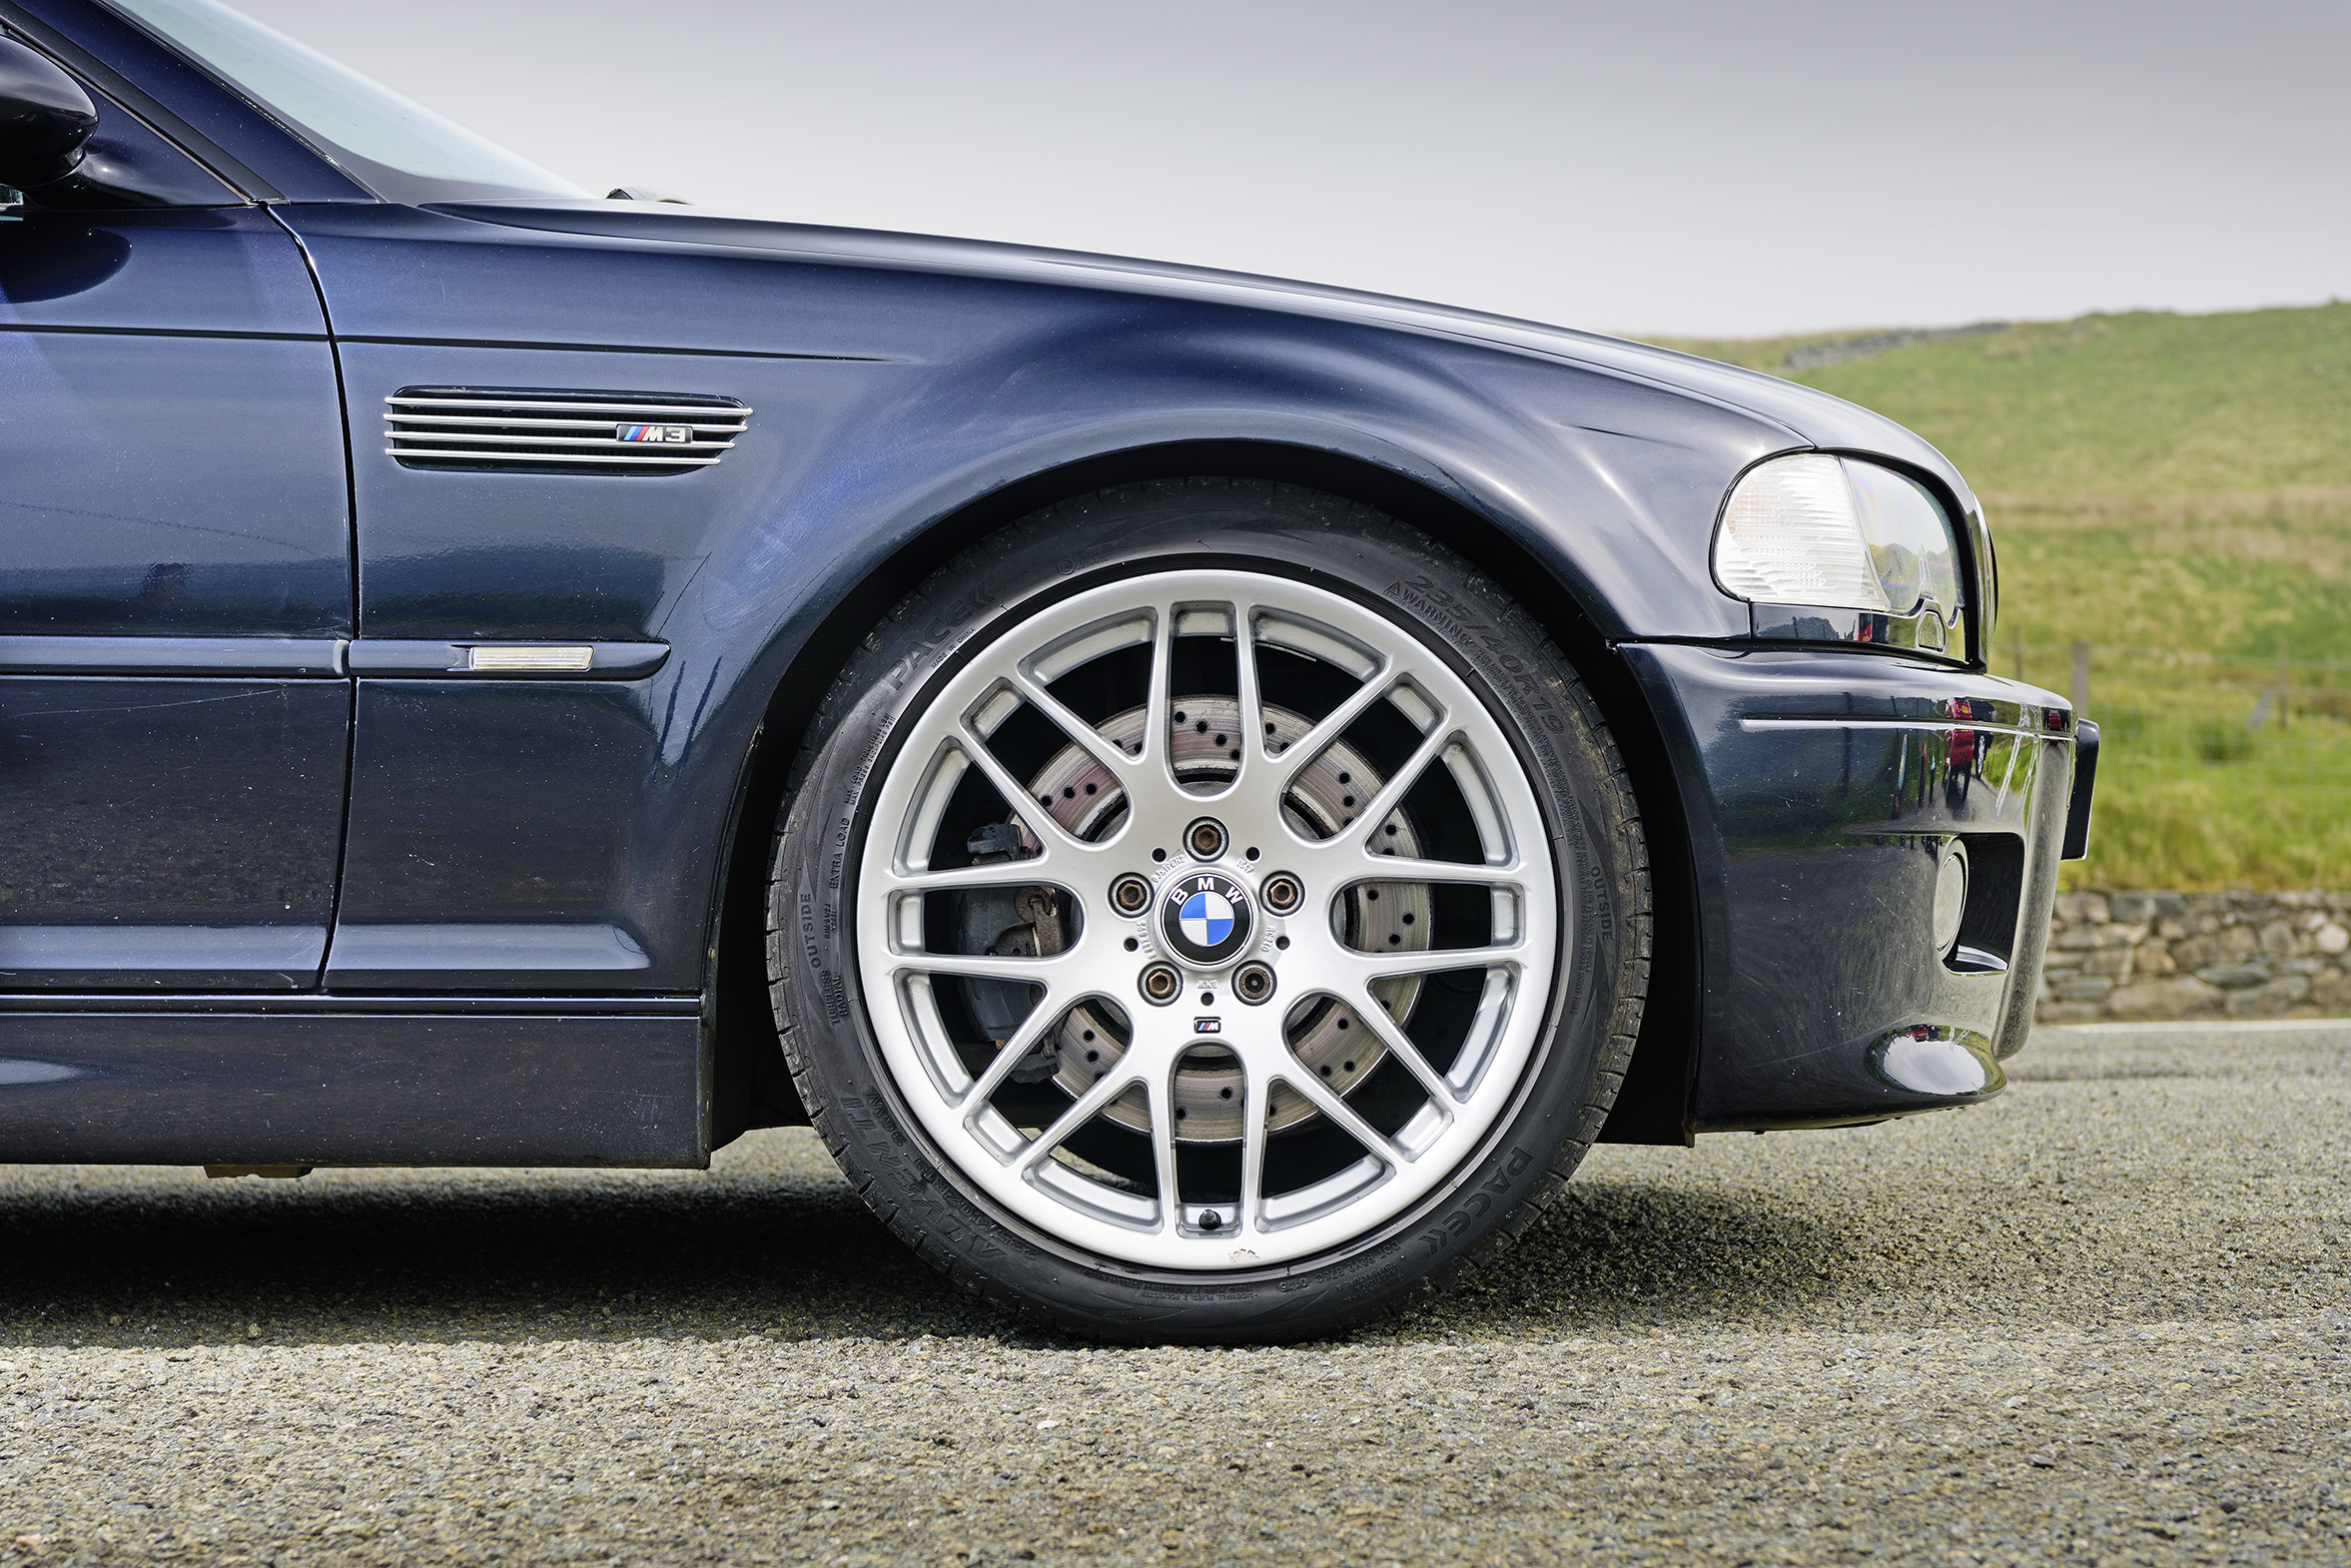 MC_BMW_1M_VS_E46M3©DEANSMITH006.jpg